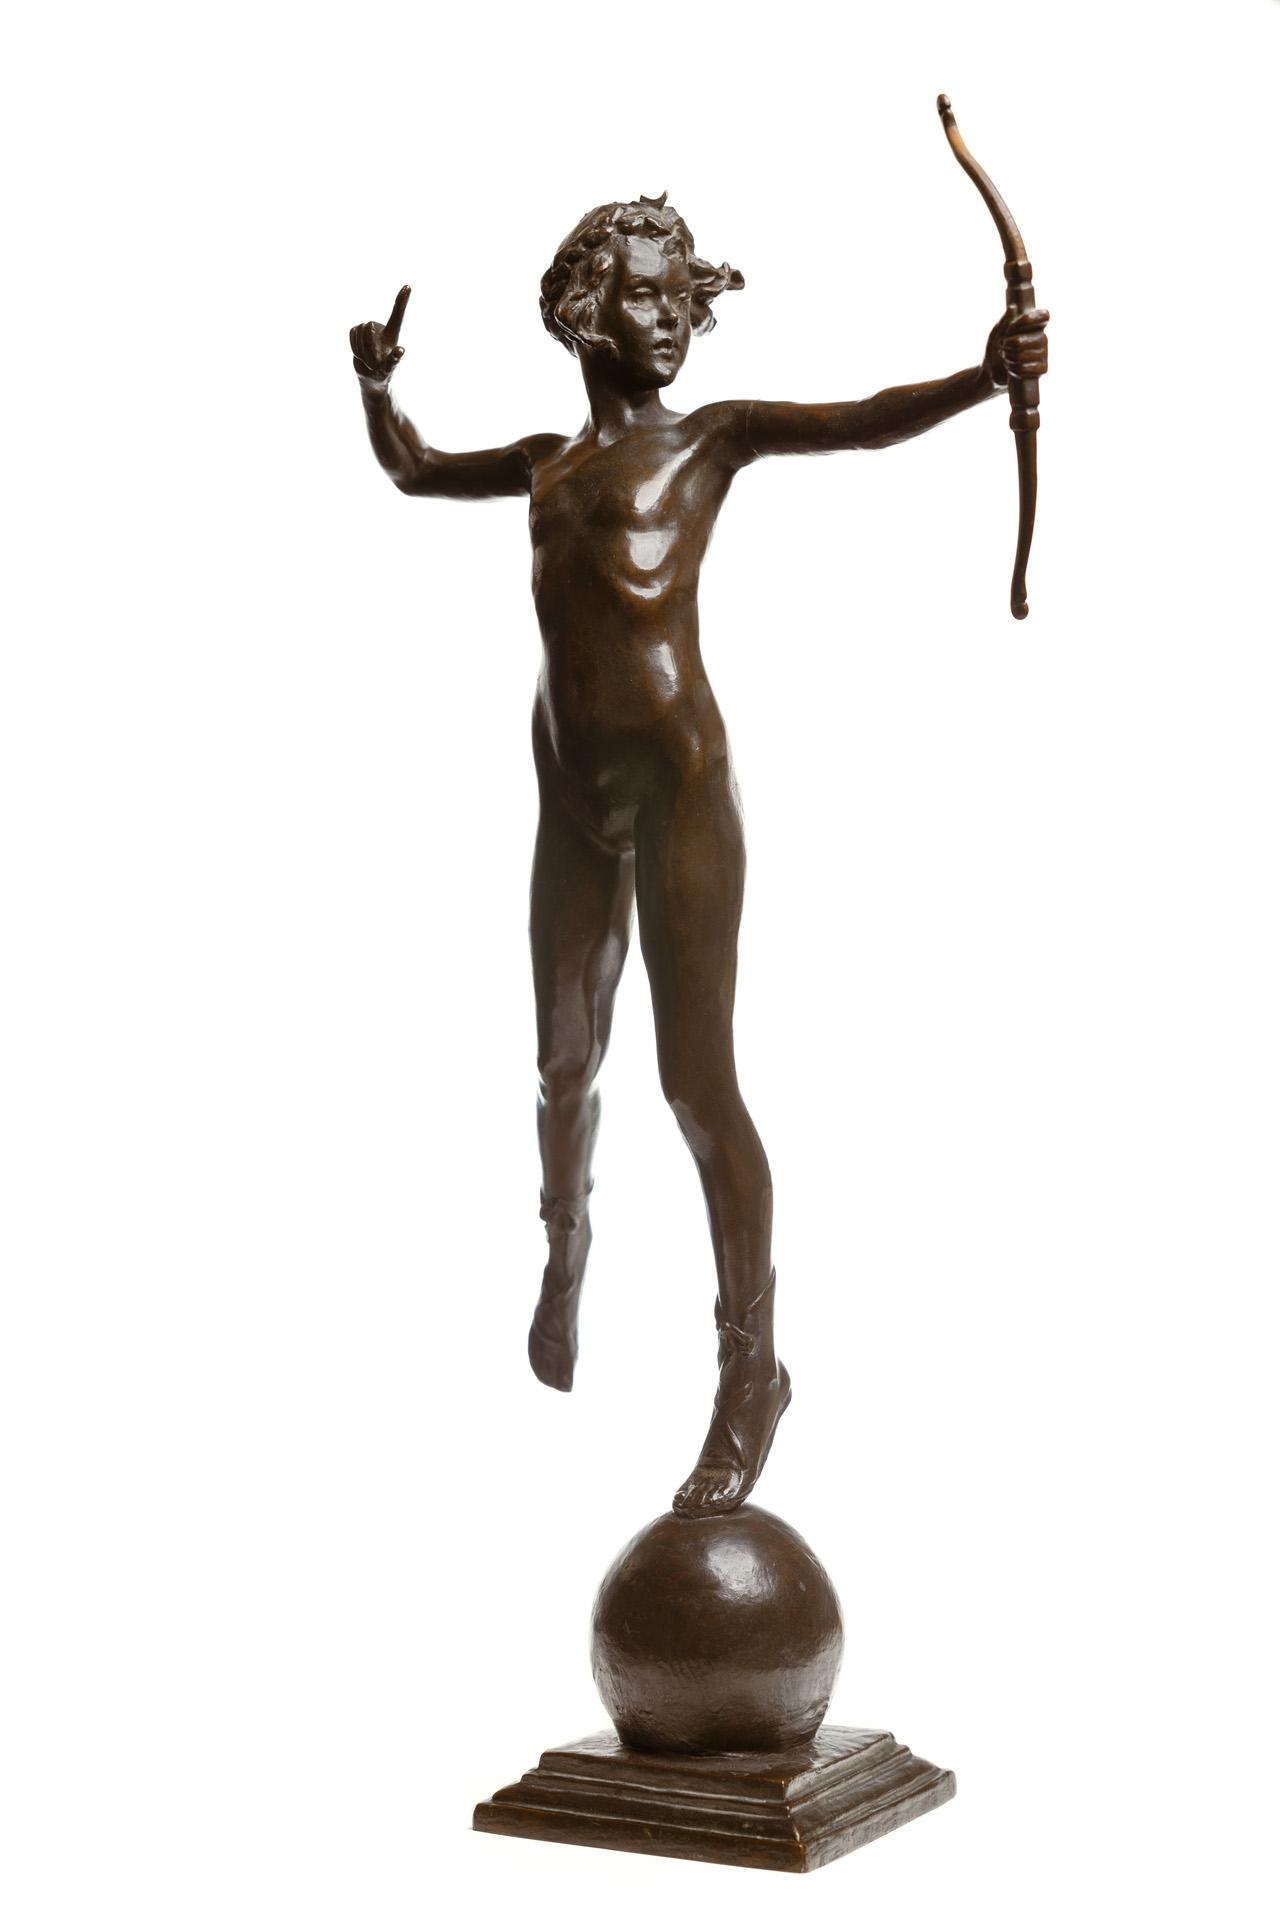 """JANET SCUDDER, American (1873-1940), Young Diana, bronze, signed and stamped with foundry mark """"Alexis Rudier Foundeur Paris"""", heigh..."""